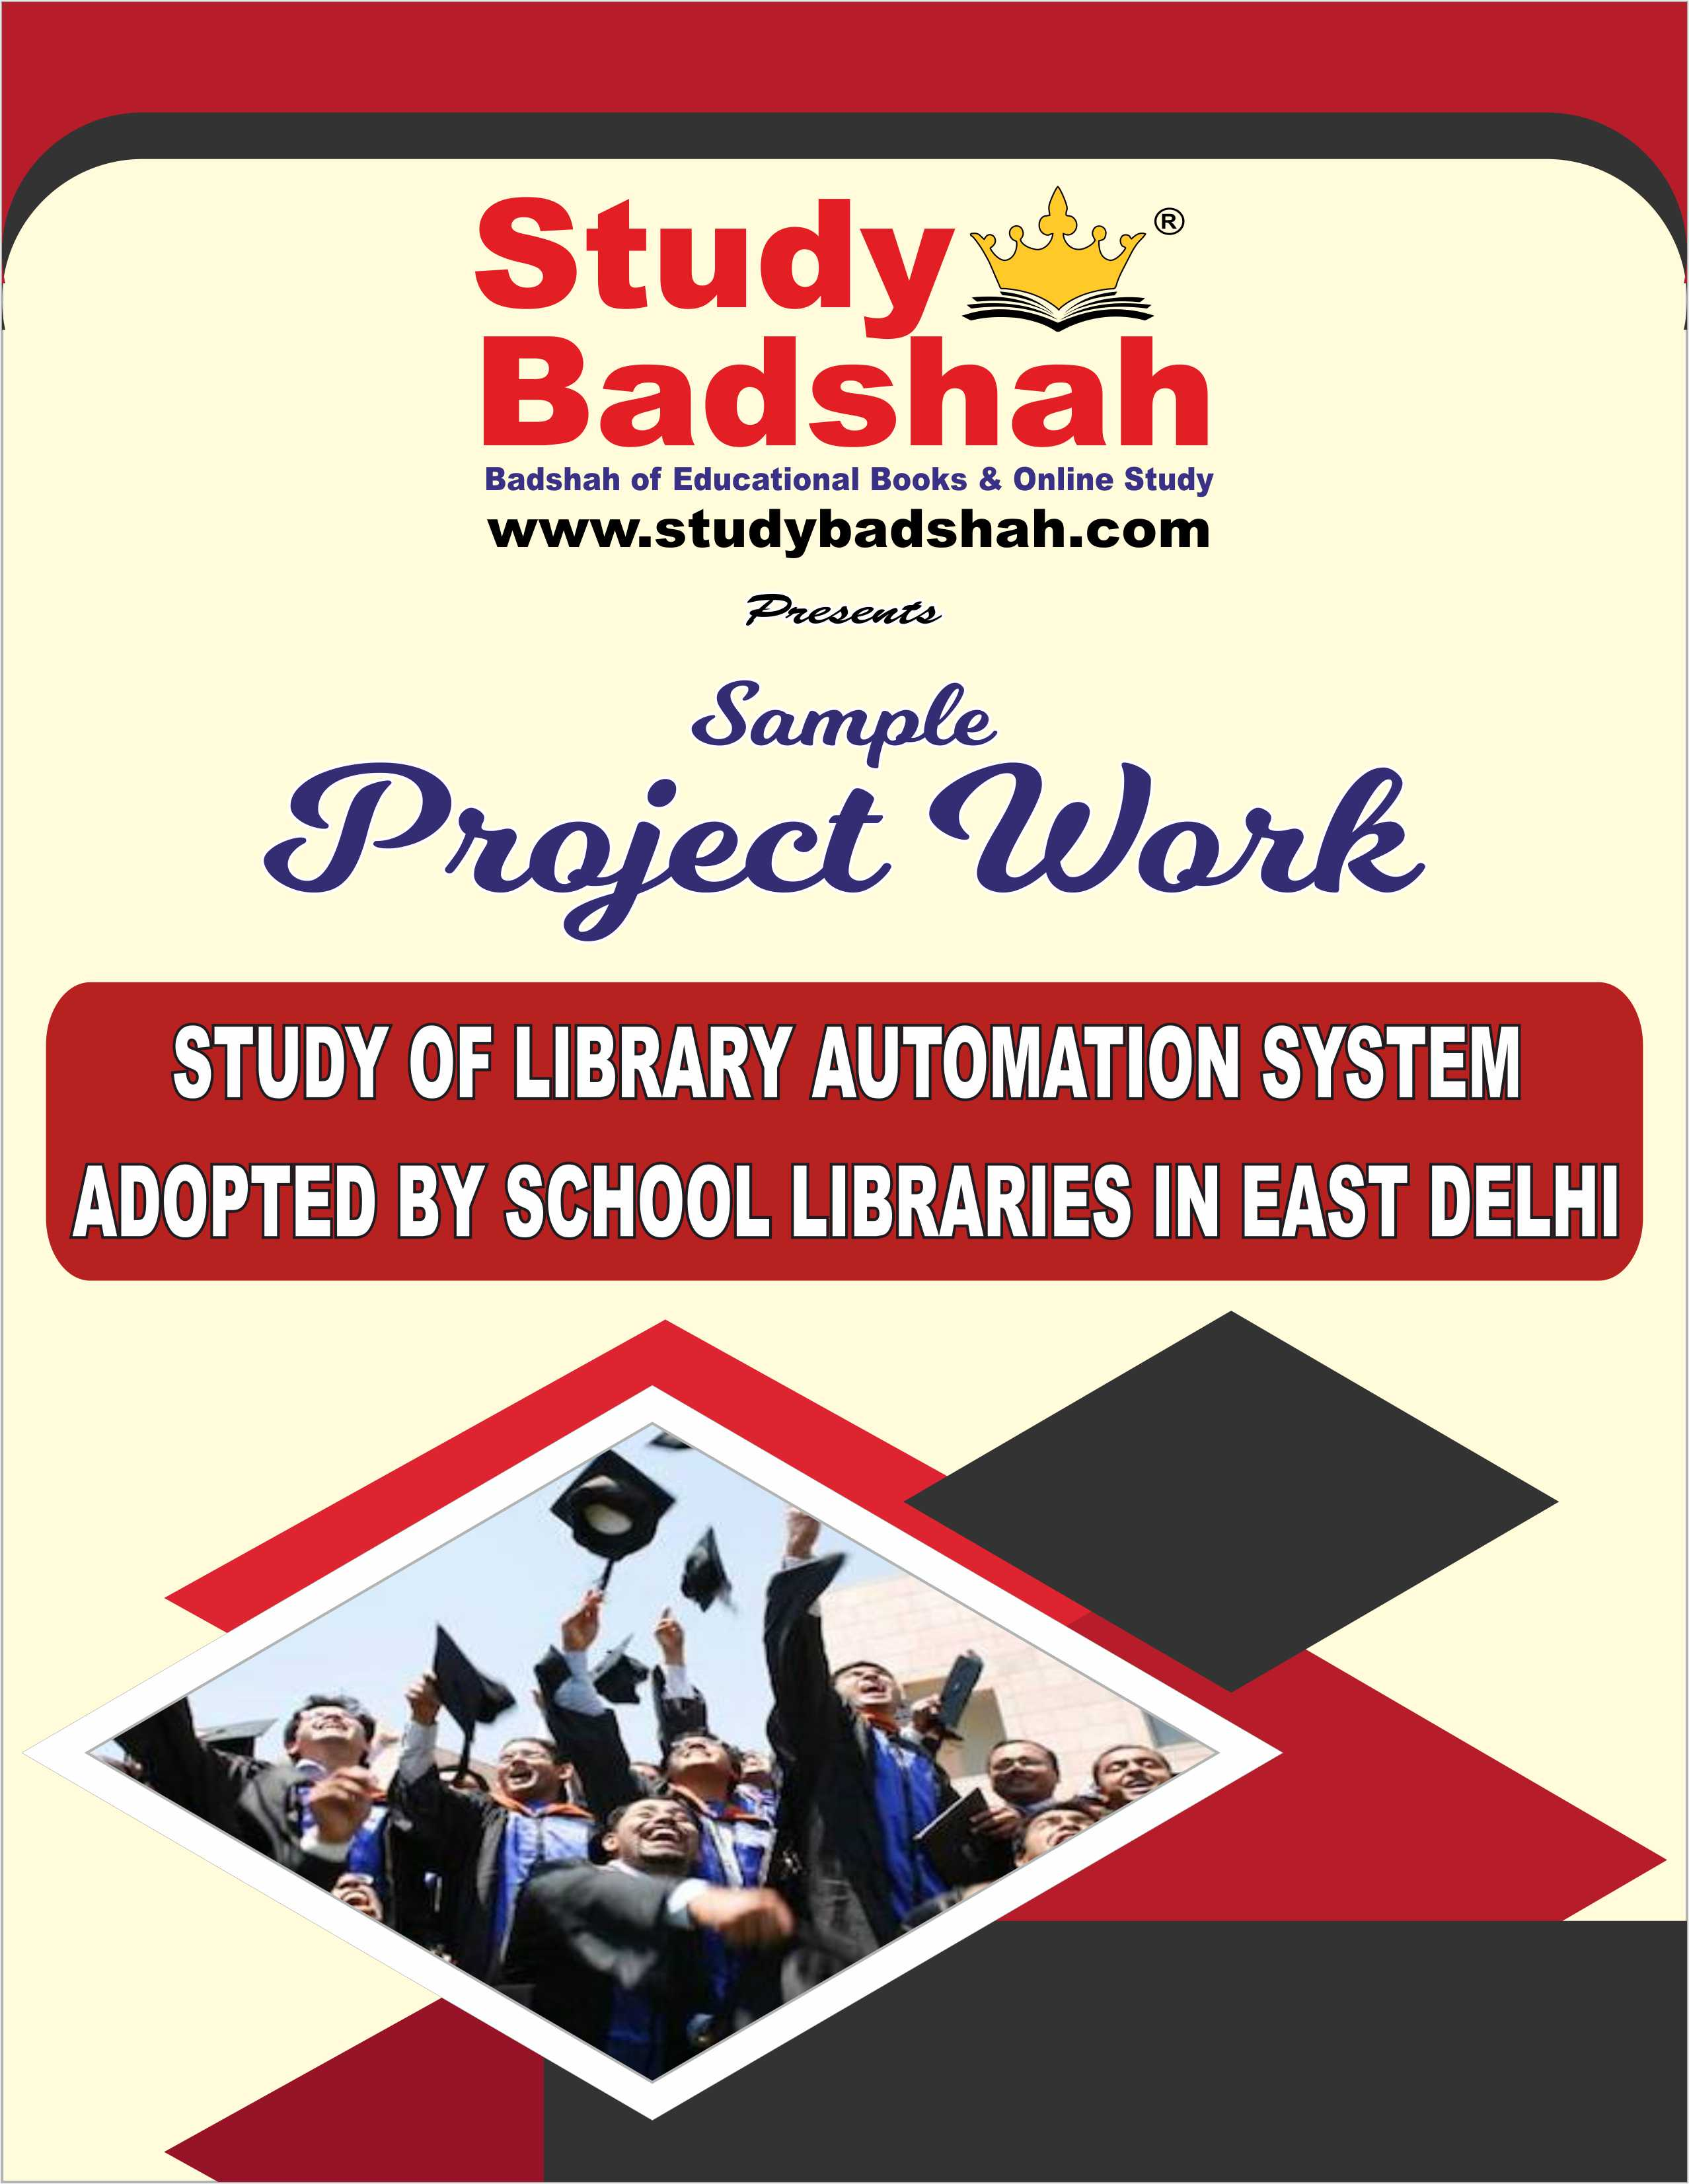 Study of Library Automation System Adopted by School Libraries in East Delhi